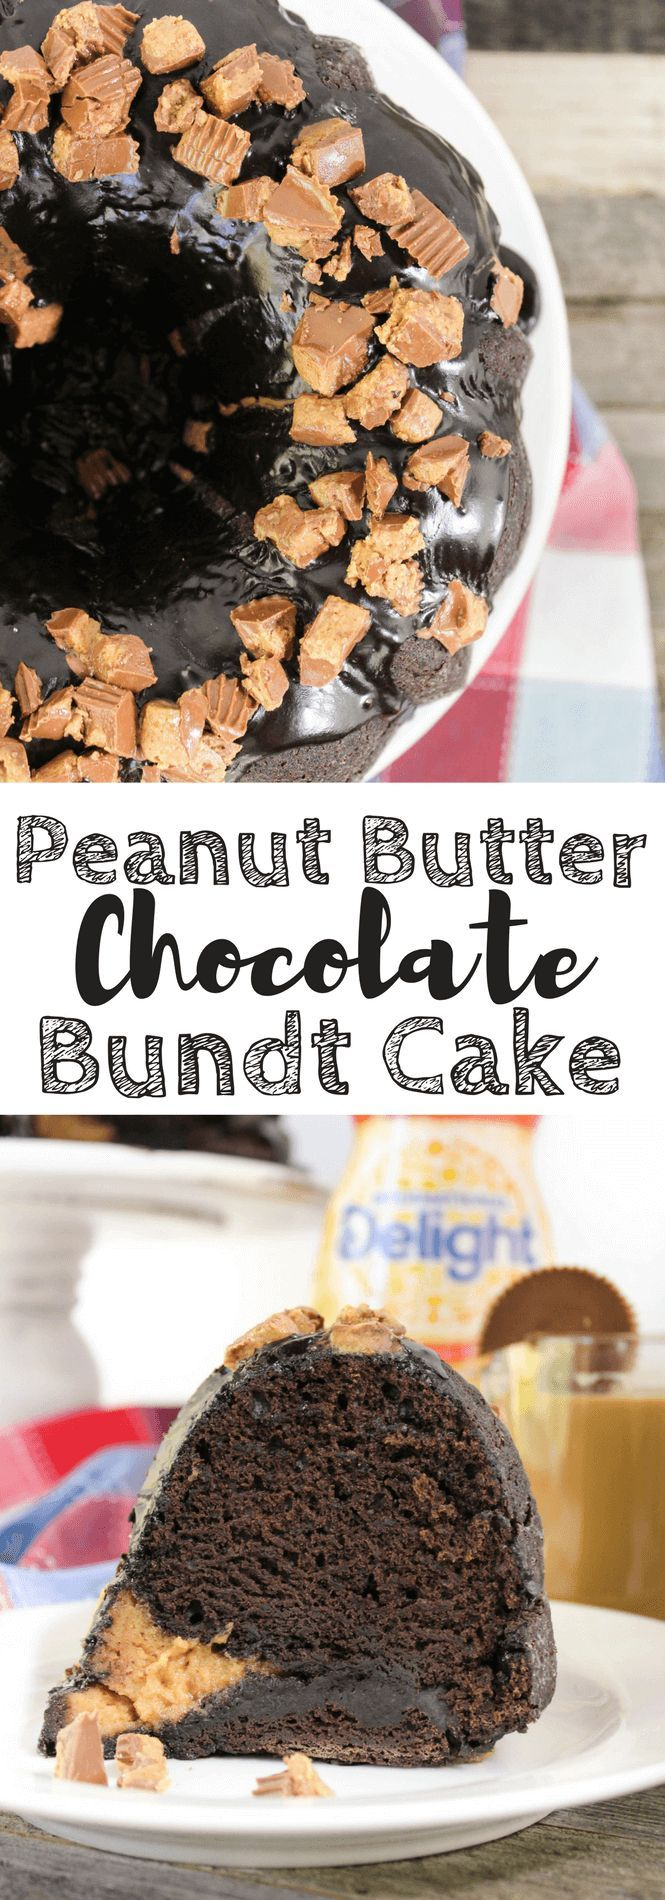 Peanut Butter Chocolate Bundt Cake #ad #DelightfulMoments @walmart